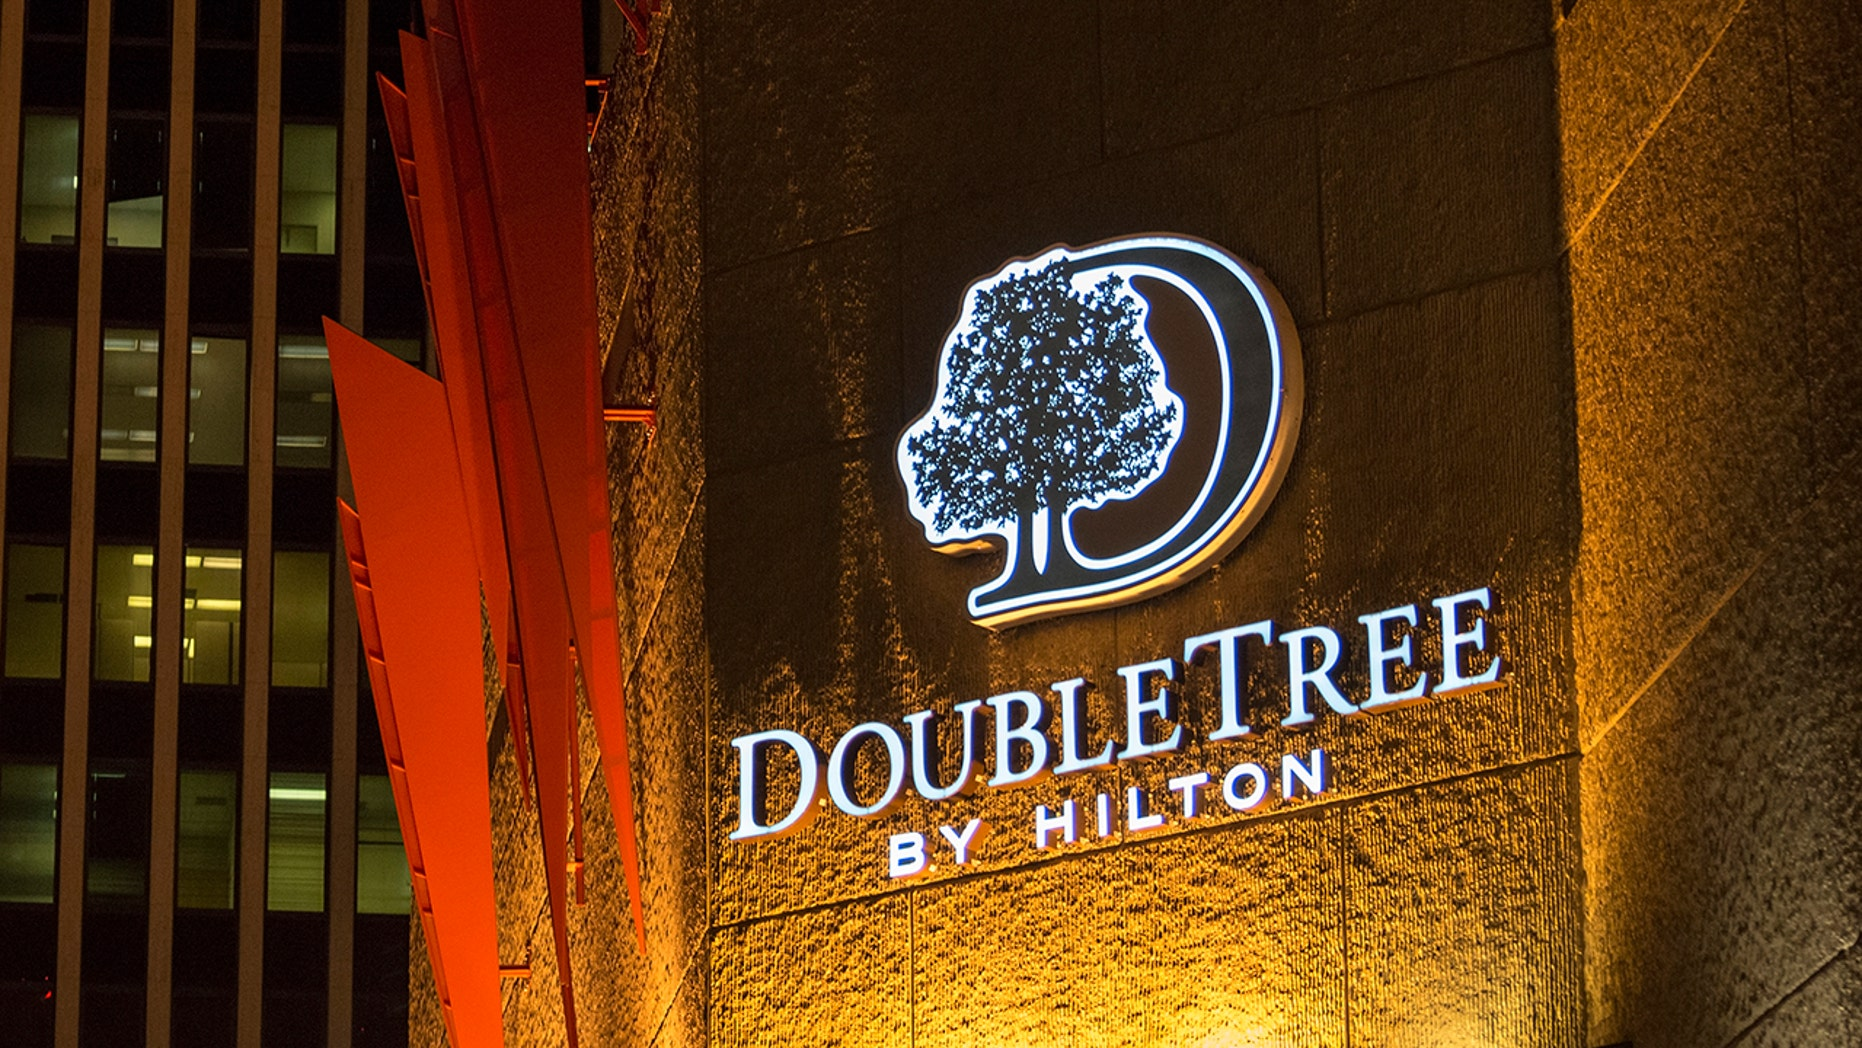 The DoubleTree Portland said they terminated two employees involved in an incident.